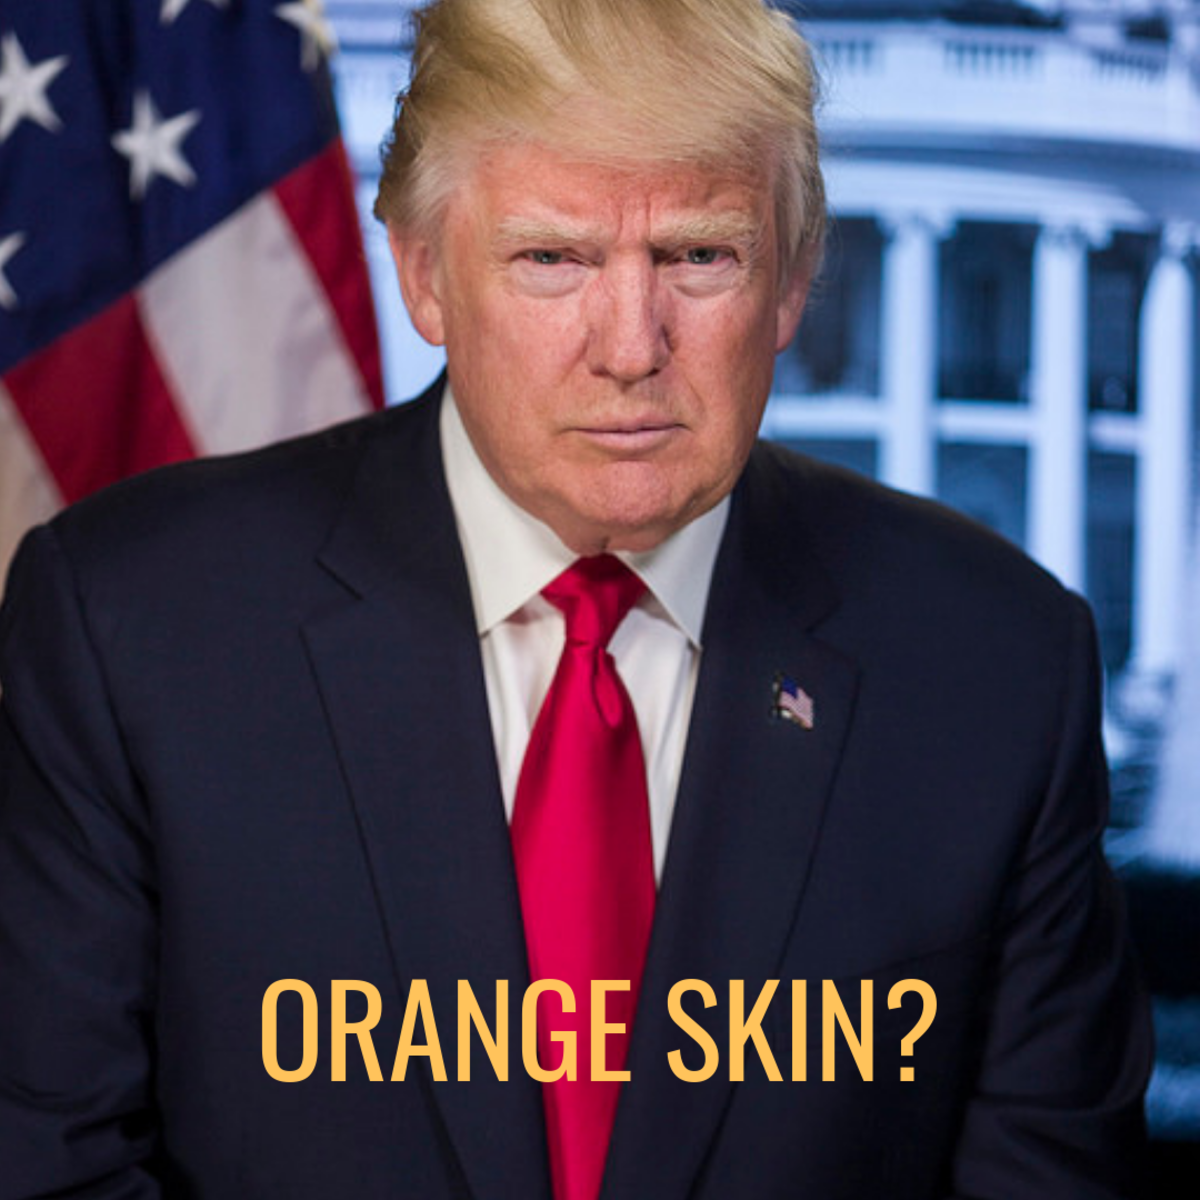 Why Is Donald Trump's Skin Orange?